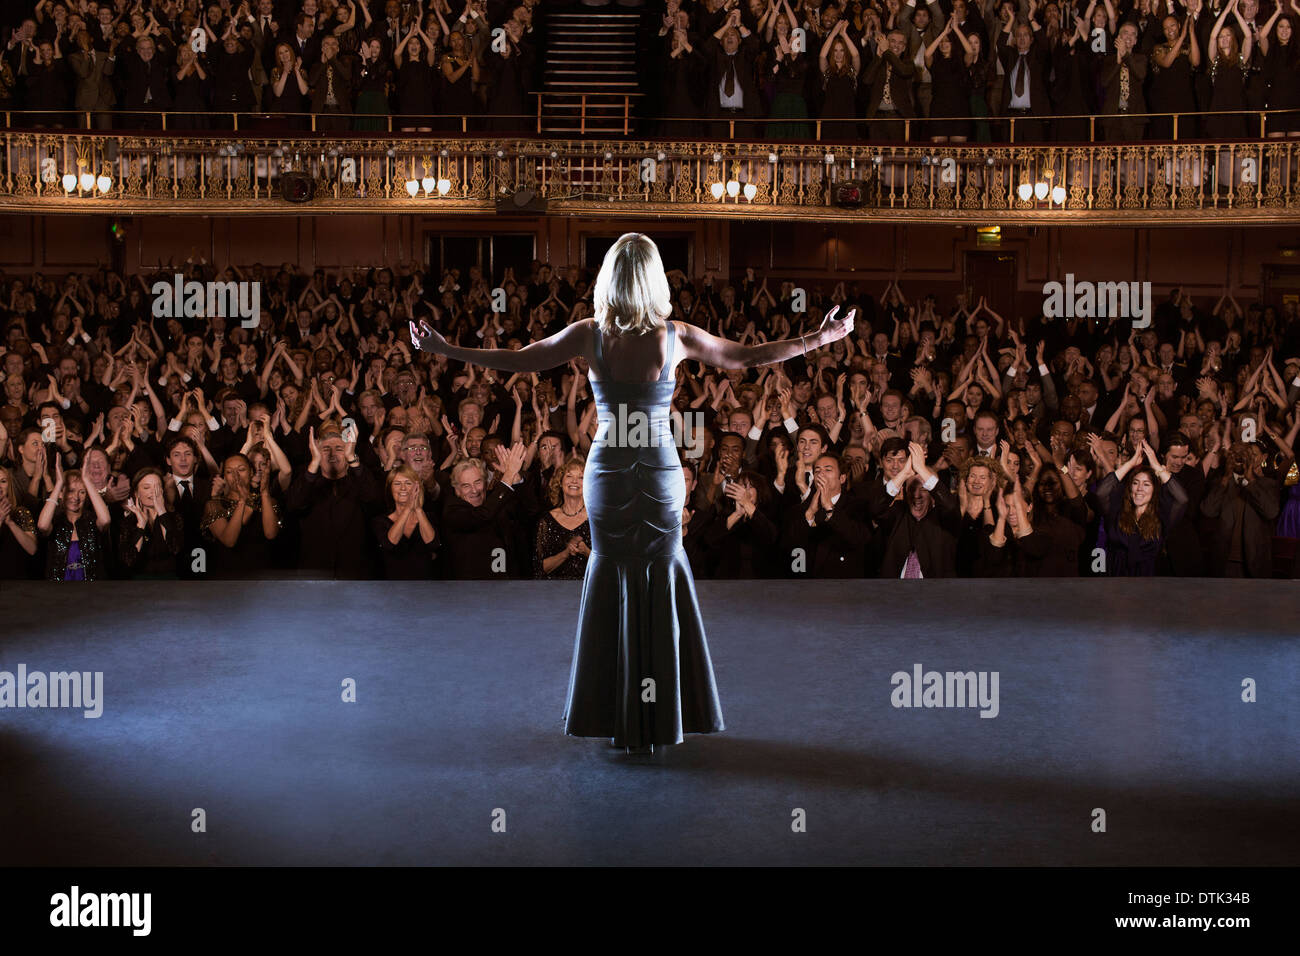 Performer standing with arms outstretched on stage in theater Stock Photo